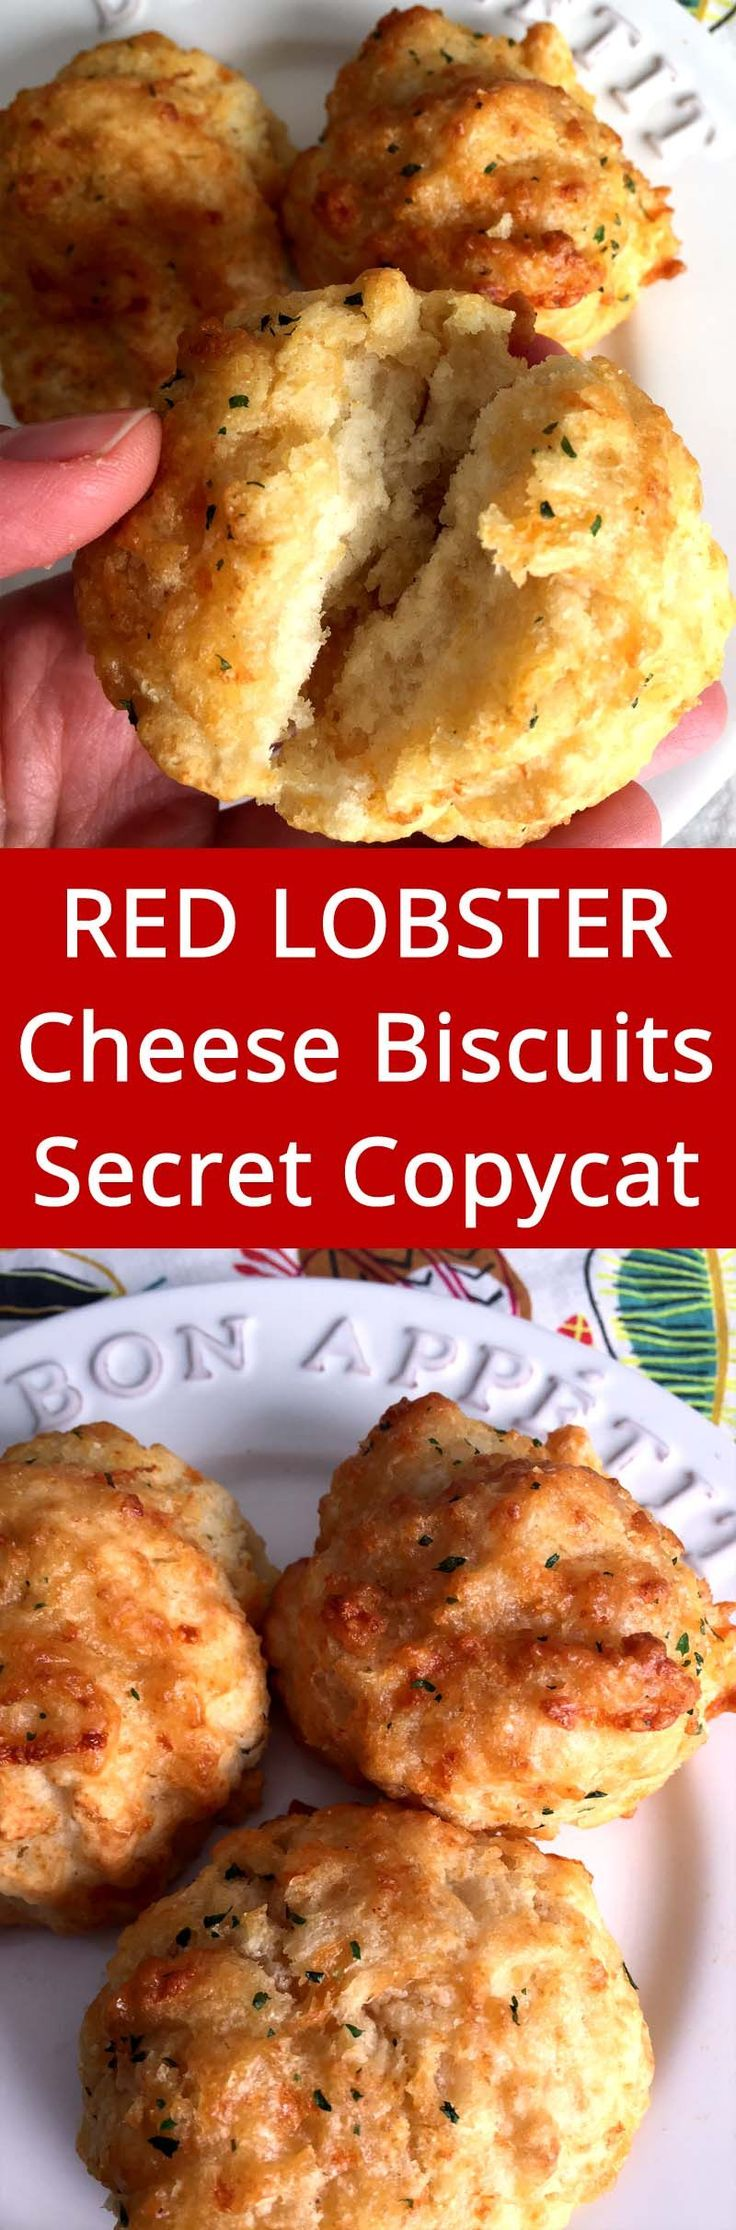 These+taste+just+like+Red+Lobster+cheese+biscuits!+Super+easy+to+make+and+so+addictive!